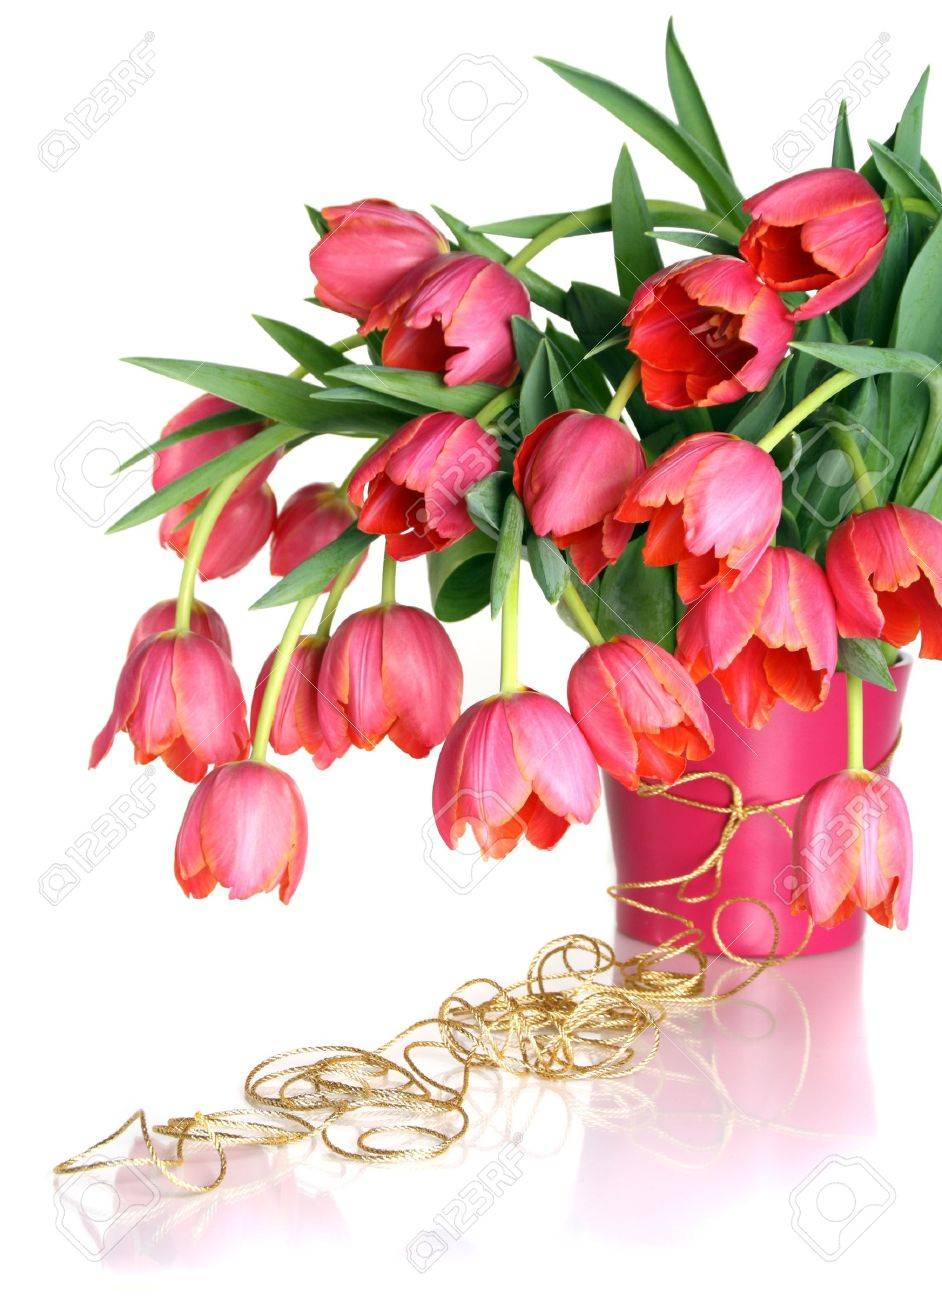 Beautiful bouquet of pink tulips isolated on white background. Stock Photo - 8477600